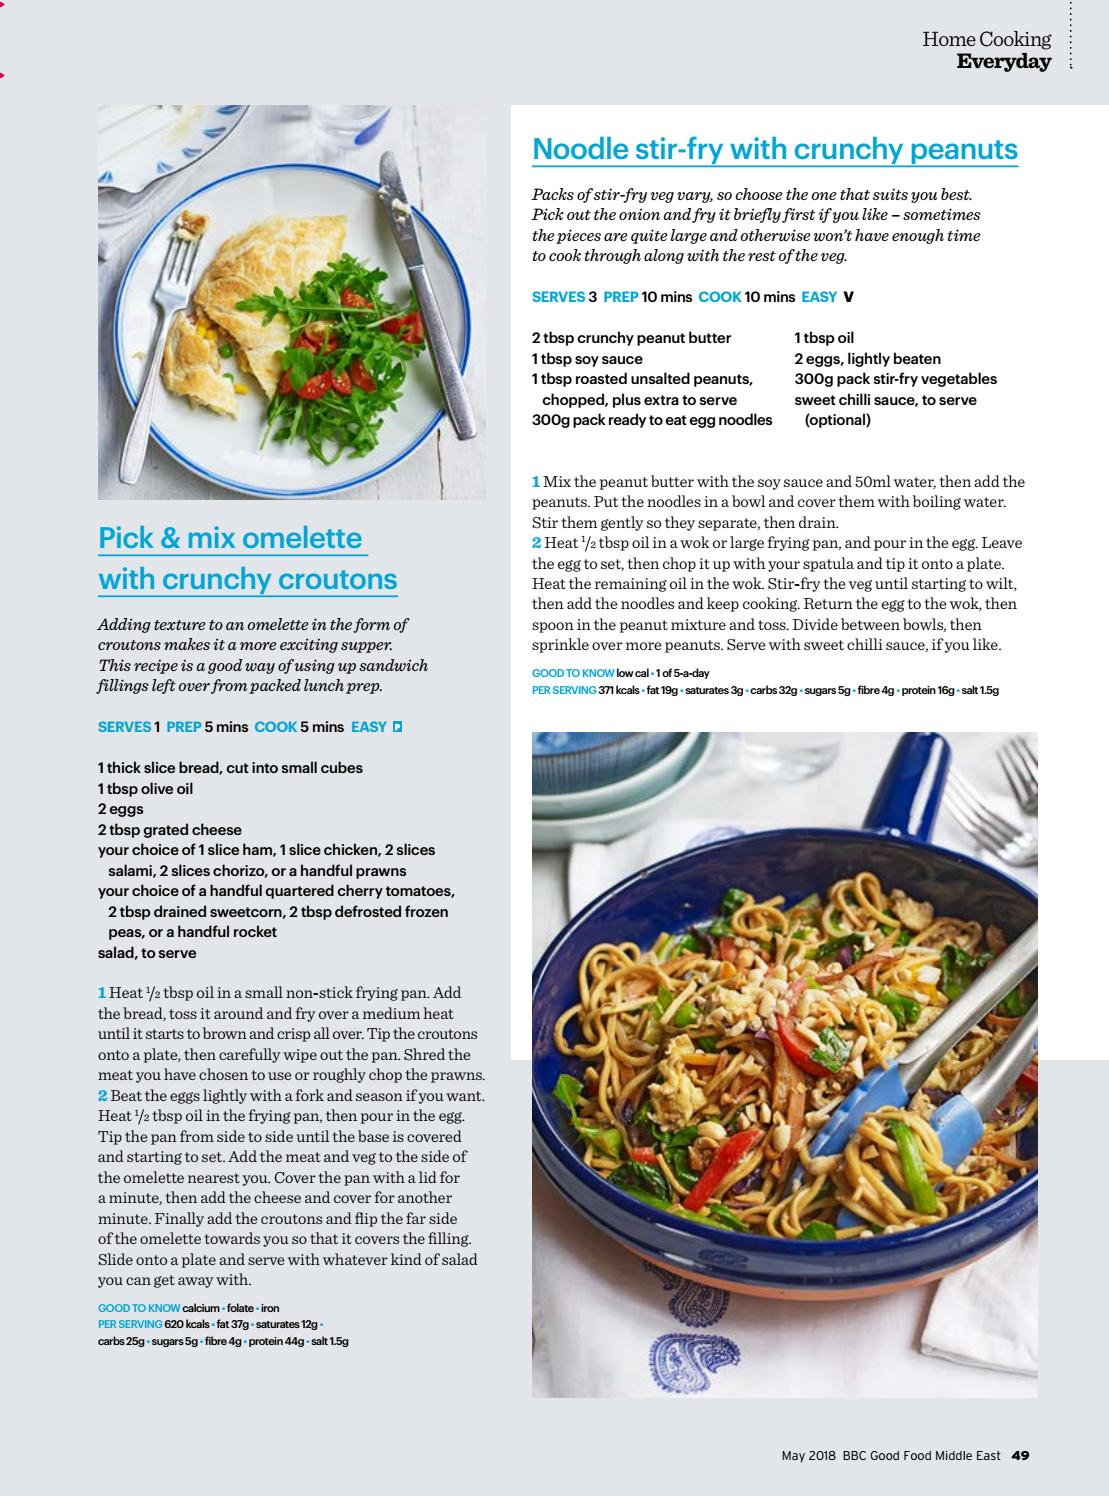 Bbc good food me 2018 may by bbc good food me issuu forumfinder Gallery